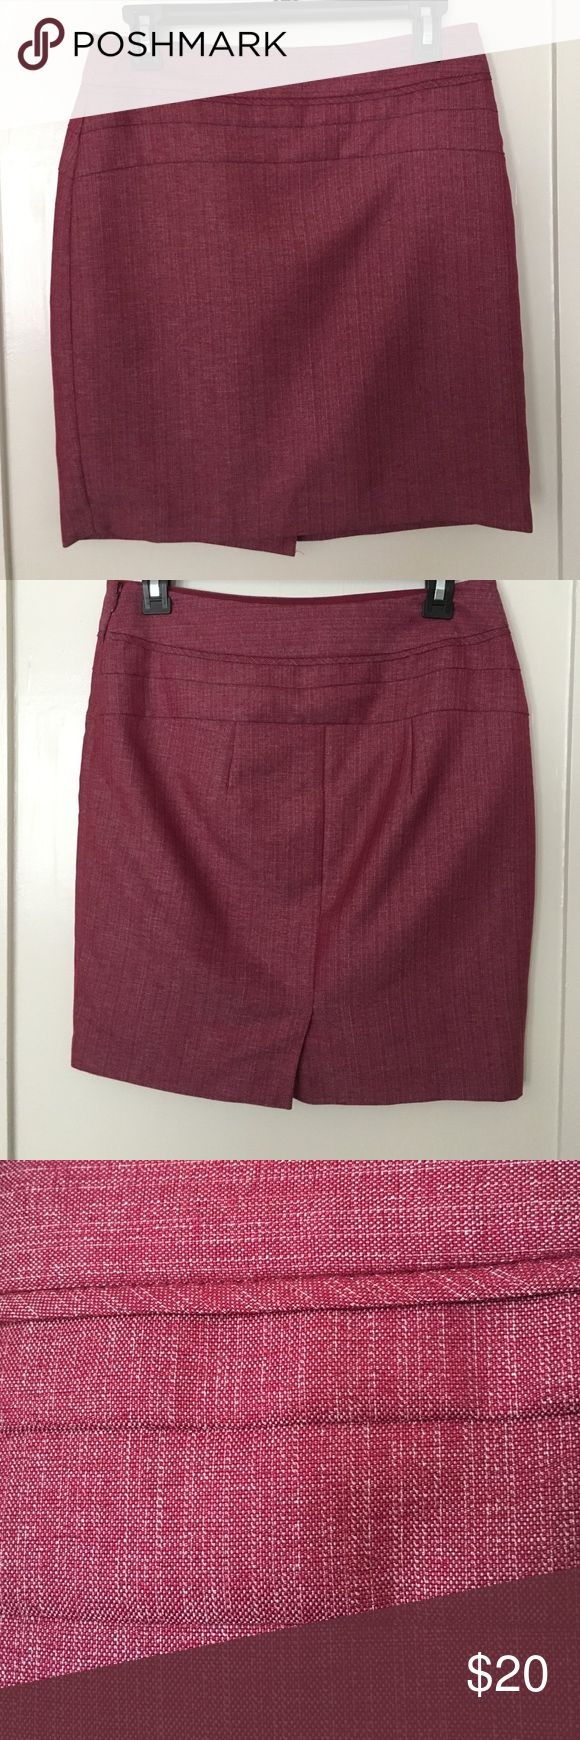 """The Limited magenta/cream pencil skirt Really professional looking magenta colored skirt from the Limited. Fabric has cream/tan colored lines. Has a side zipper and a modest slit in the back. Pet and smoke free home. 18"""" long. I have other work/career/professional items for sale and offer bundle discounts. This skirt looks great with a white top and tan blazer. The Limited Skirts Pencil"""